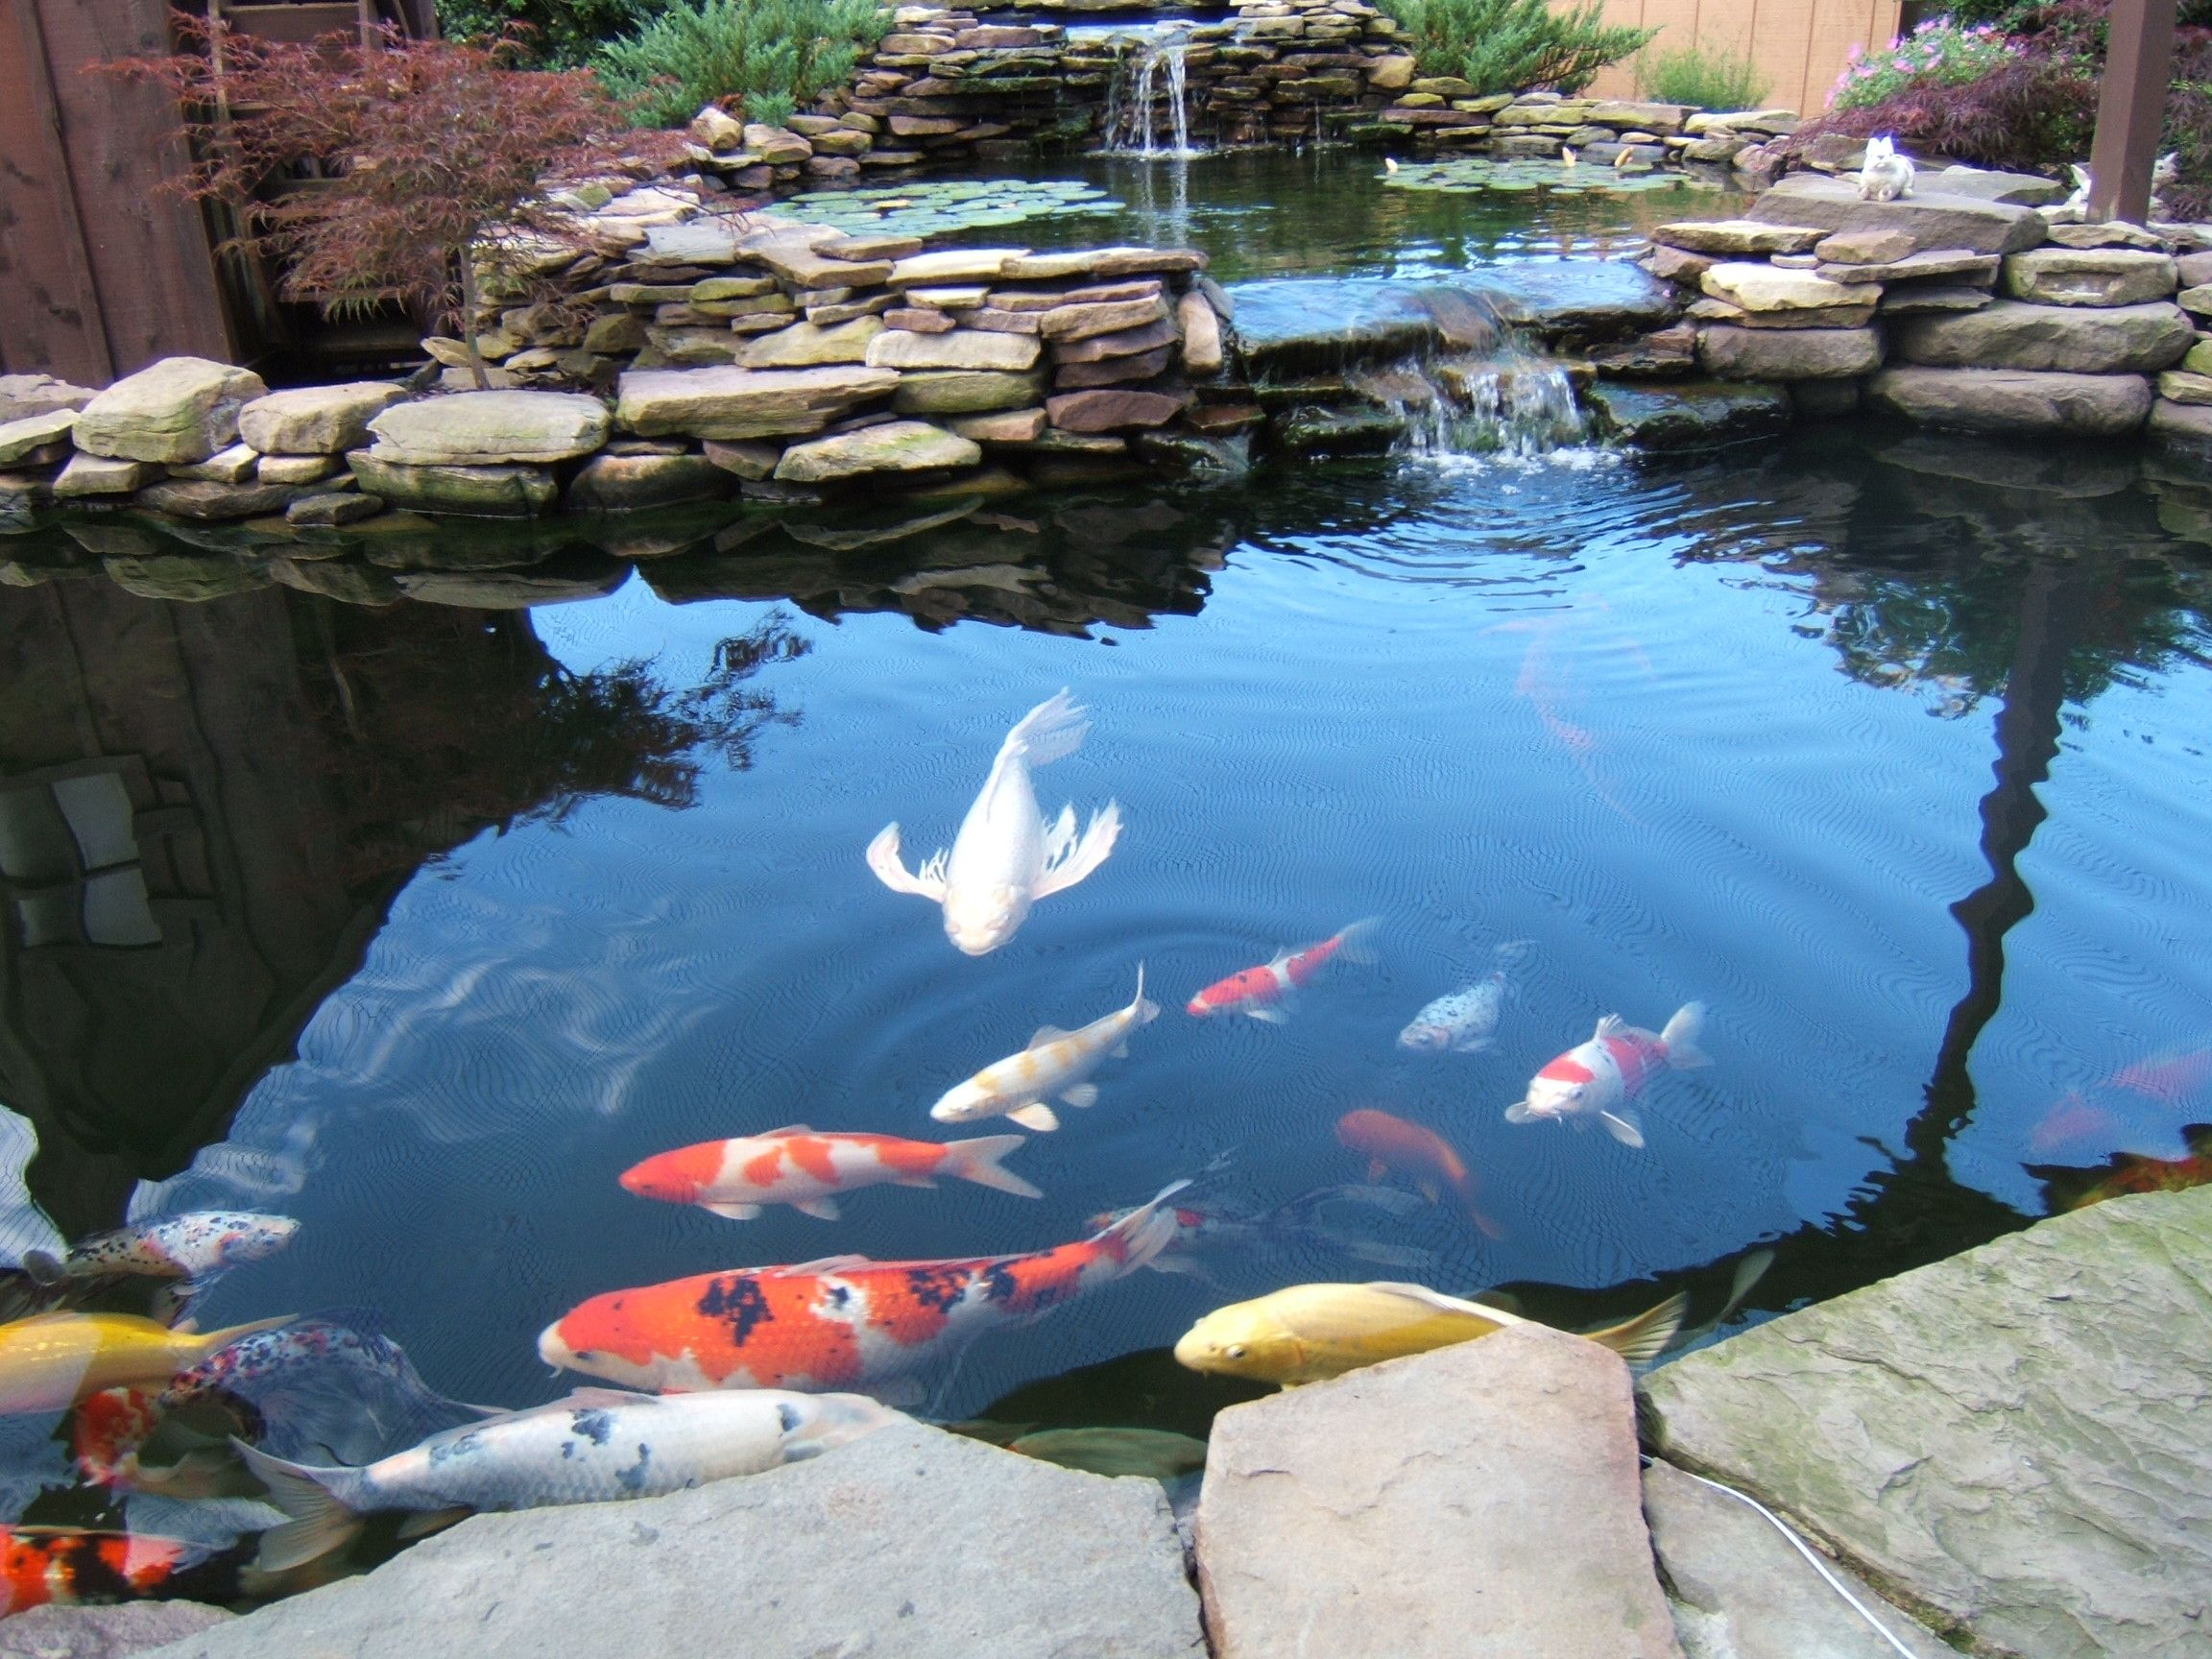 9 awesome diy koi pond and waterfall ideas for your back yard hit diy crafts [ 2304 x 1728 Pixel ]